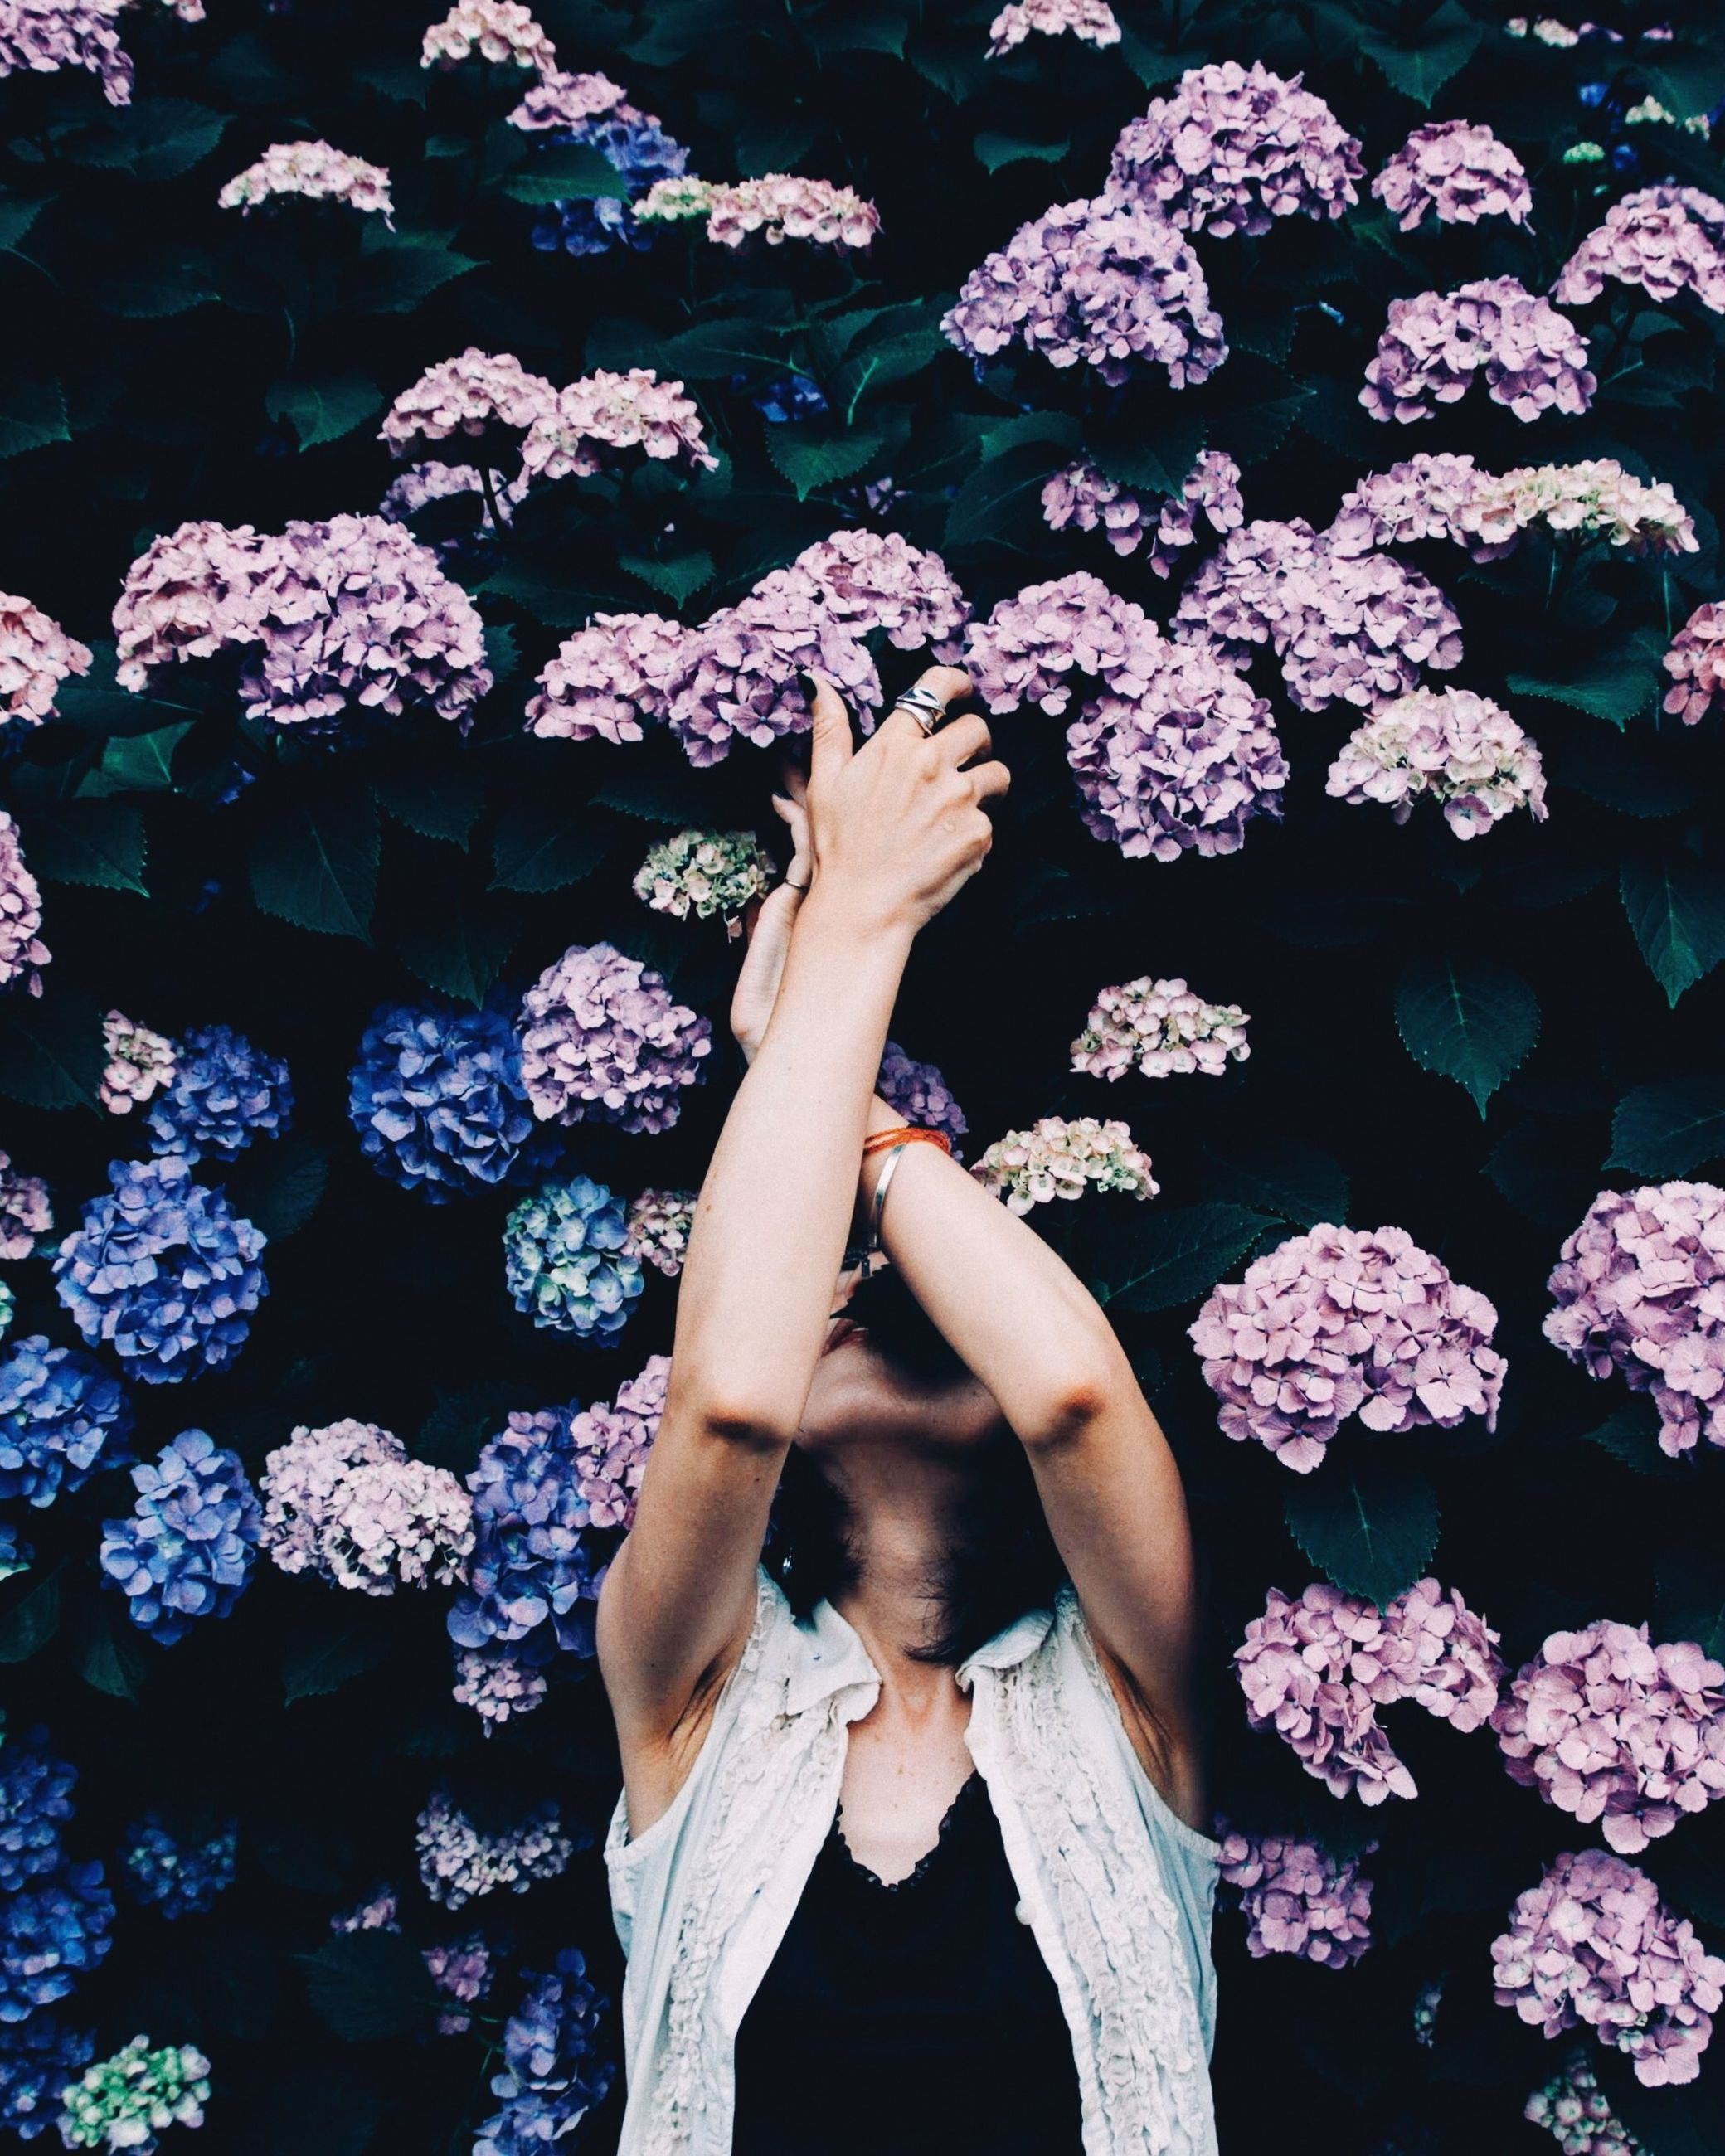 flower, flowering plant, one person, real people, lifestyles, plant, leisure activity, nature, vulnerability, fragility, standing, beauty in nature, women, high angle view, adult, day, human body part, freshness, pink color, hand, human arm, arms raised, bunch of flowers